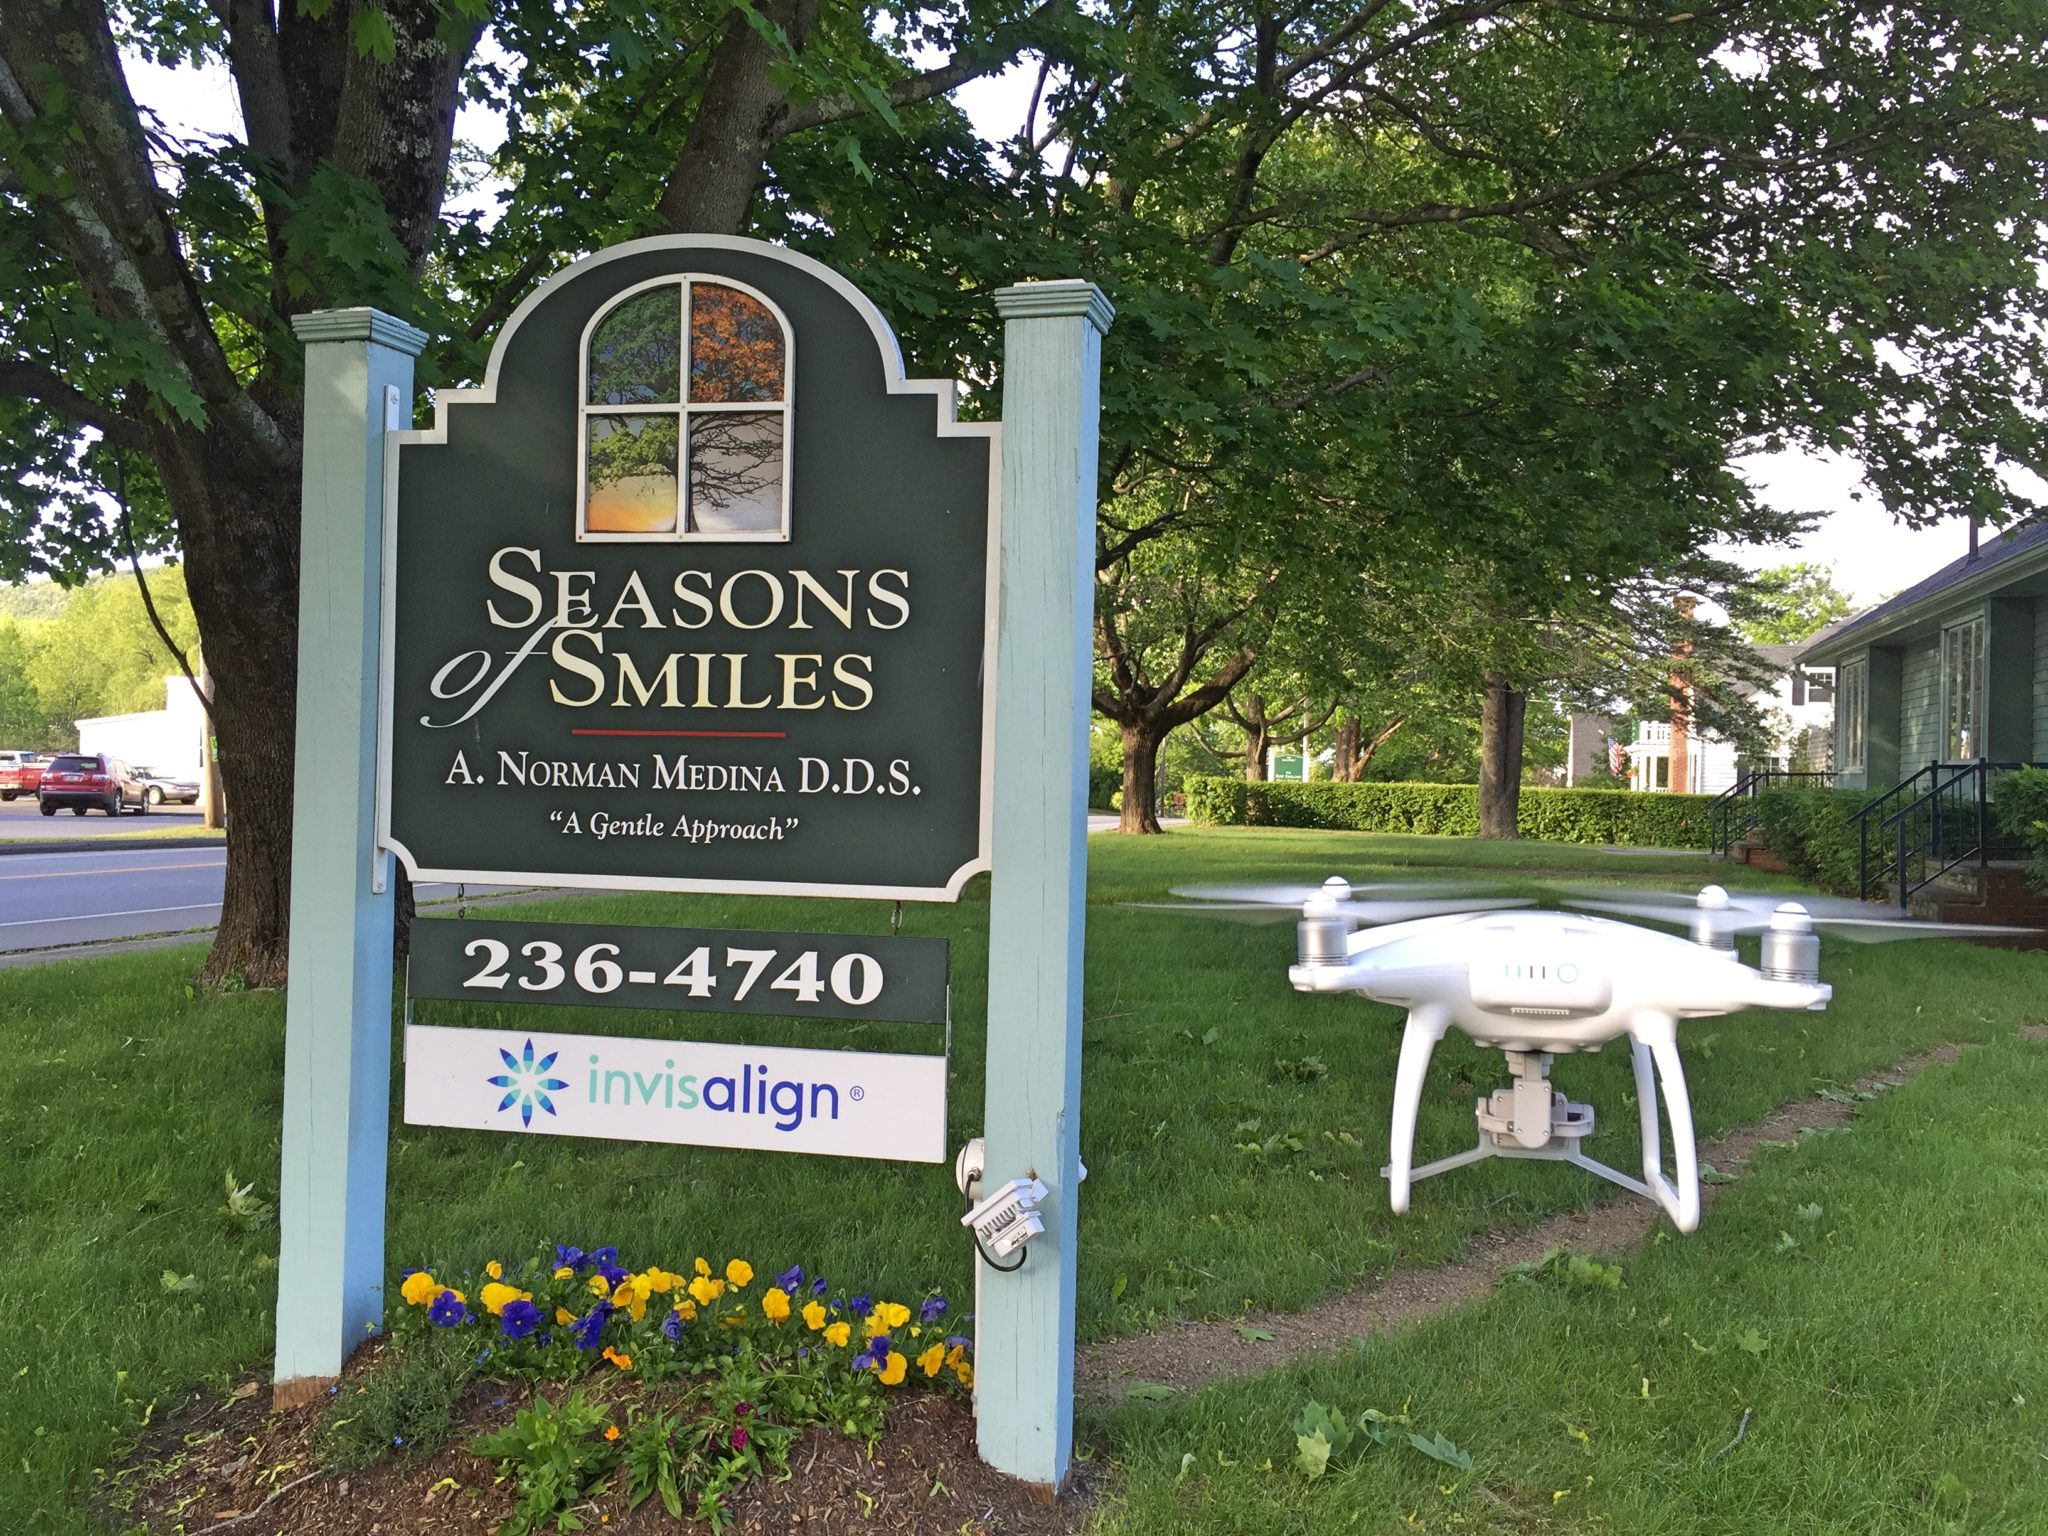 A DJI Phantom 4 Drone at the Dental Office.